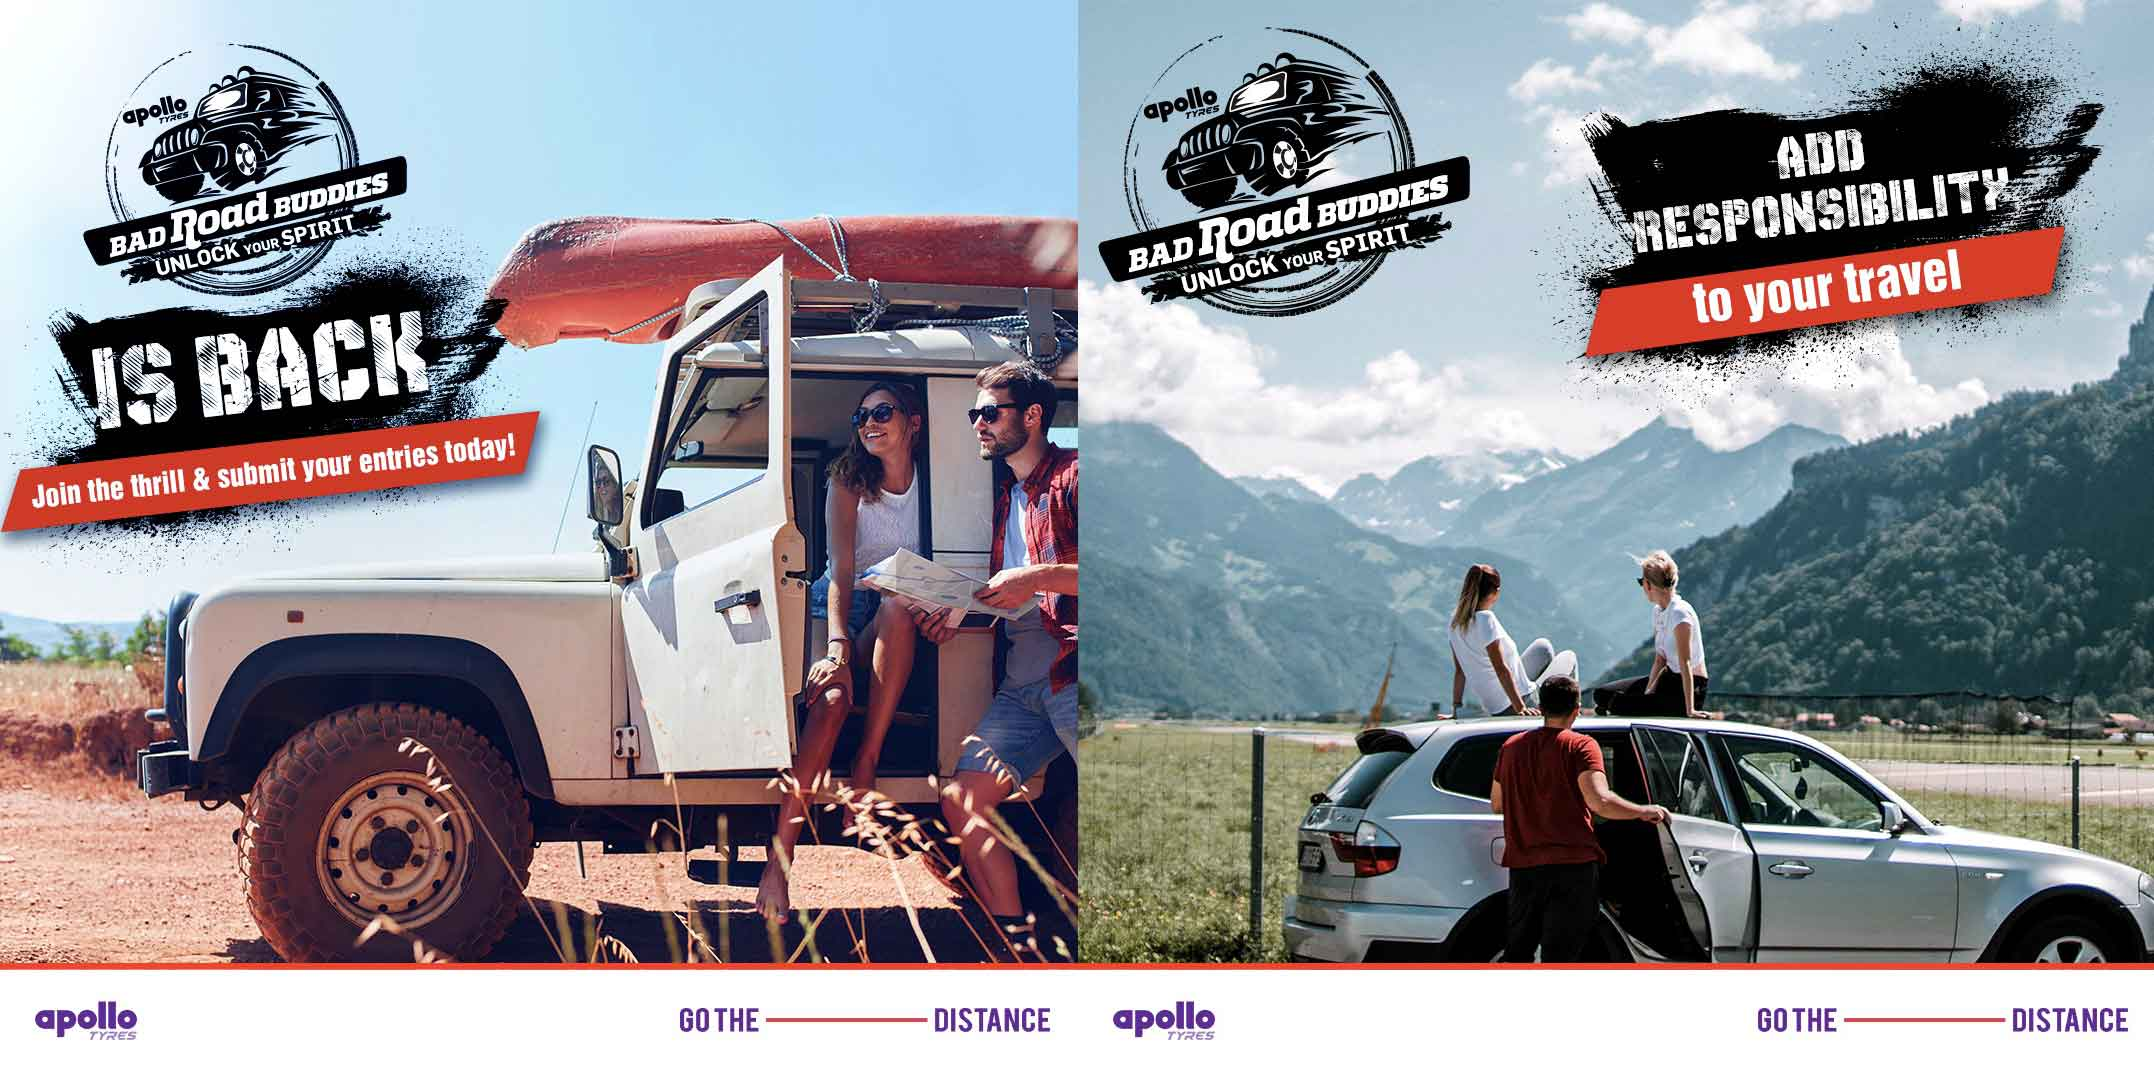 Apollo Tyres is back with #BadRoadBuddies